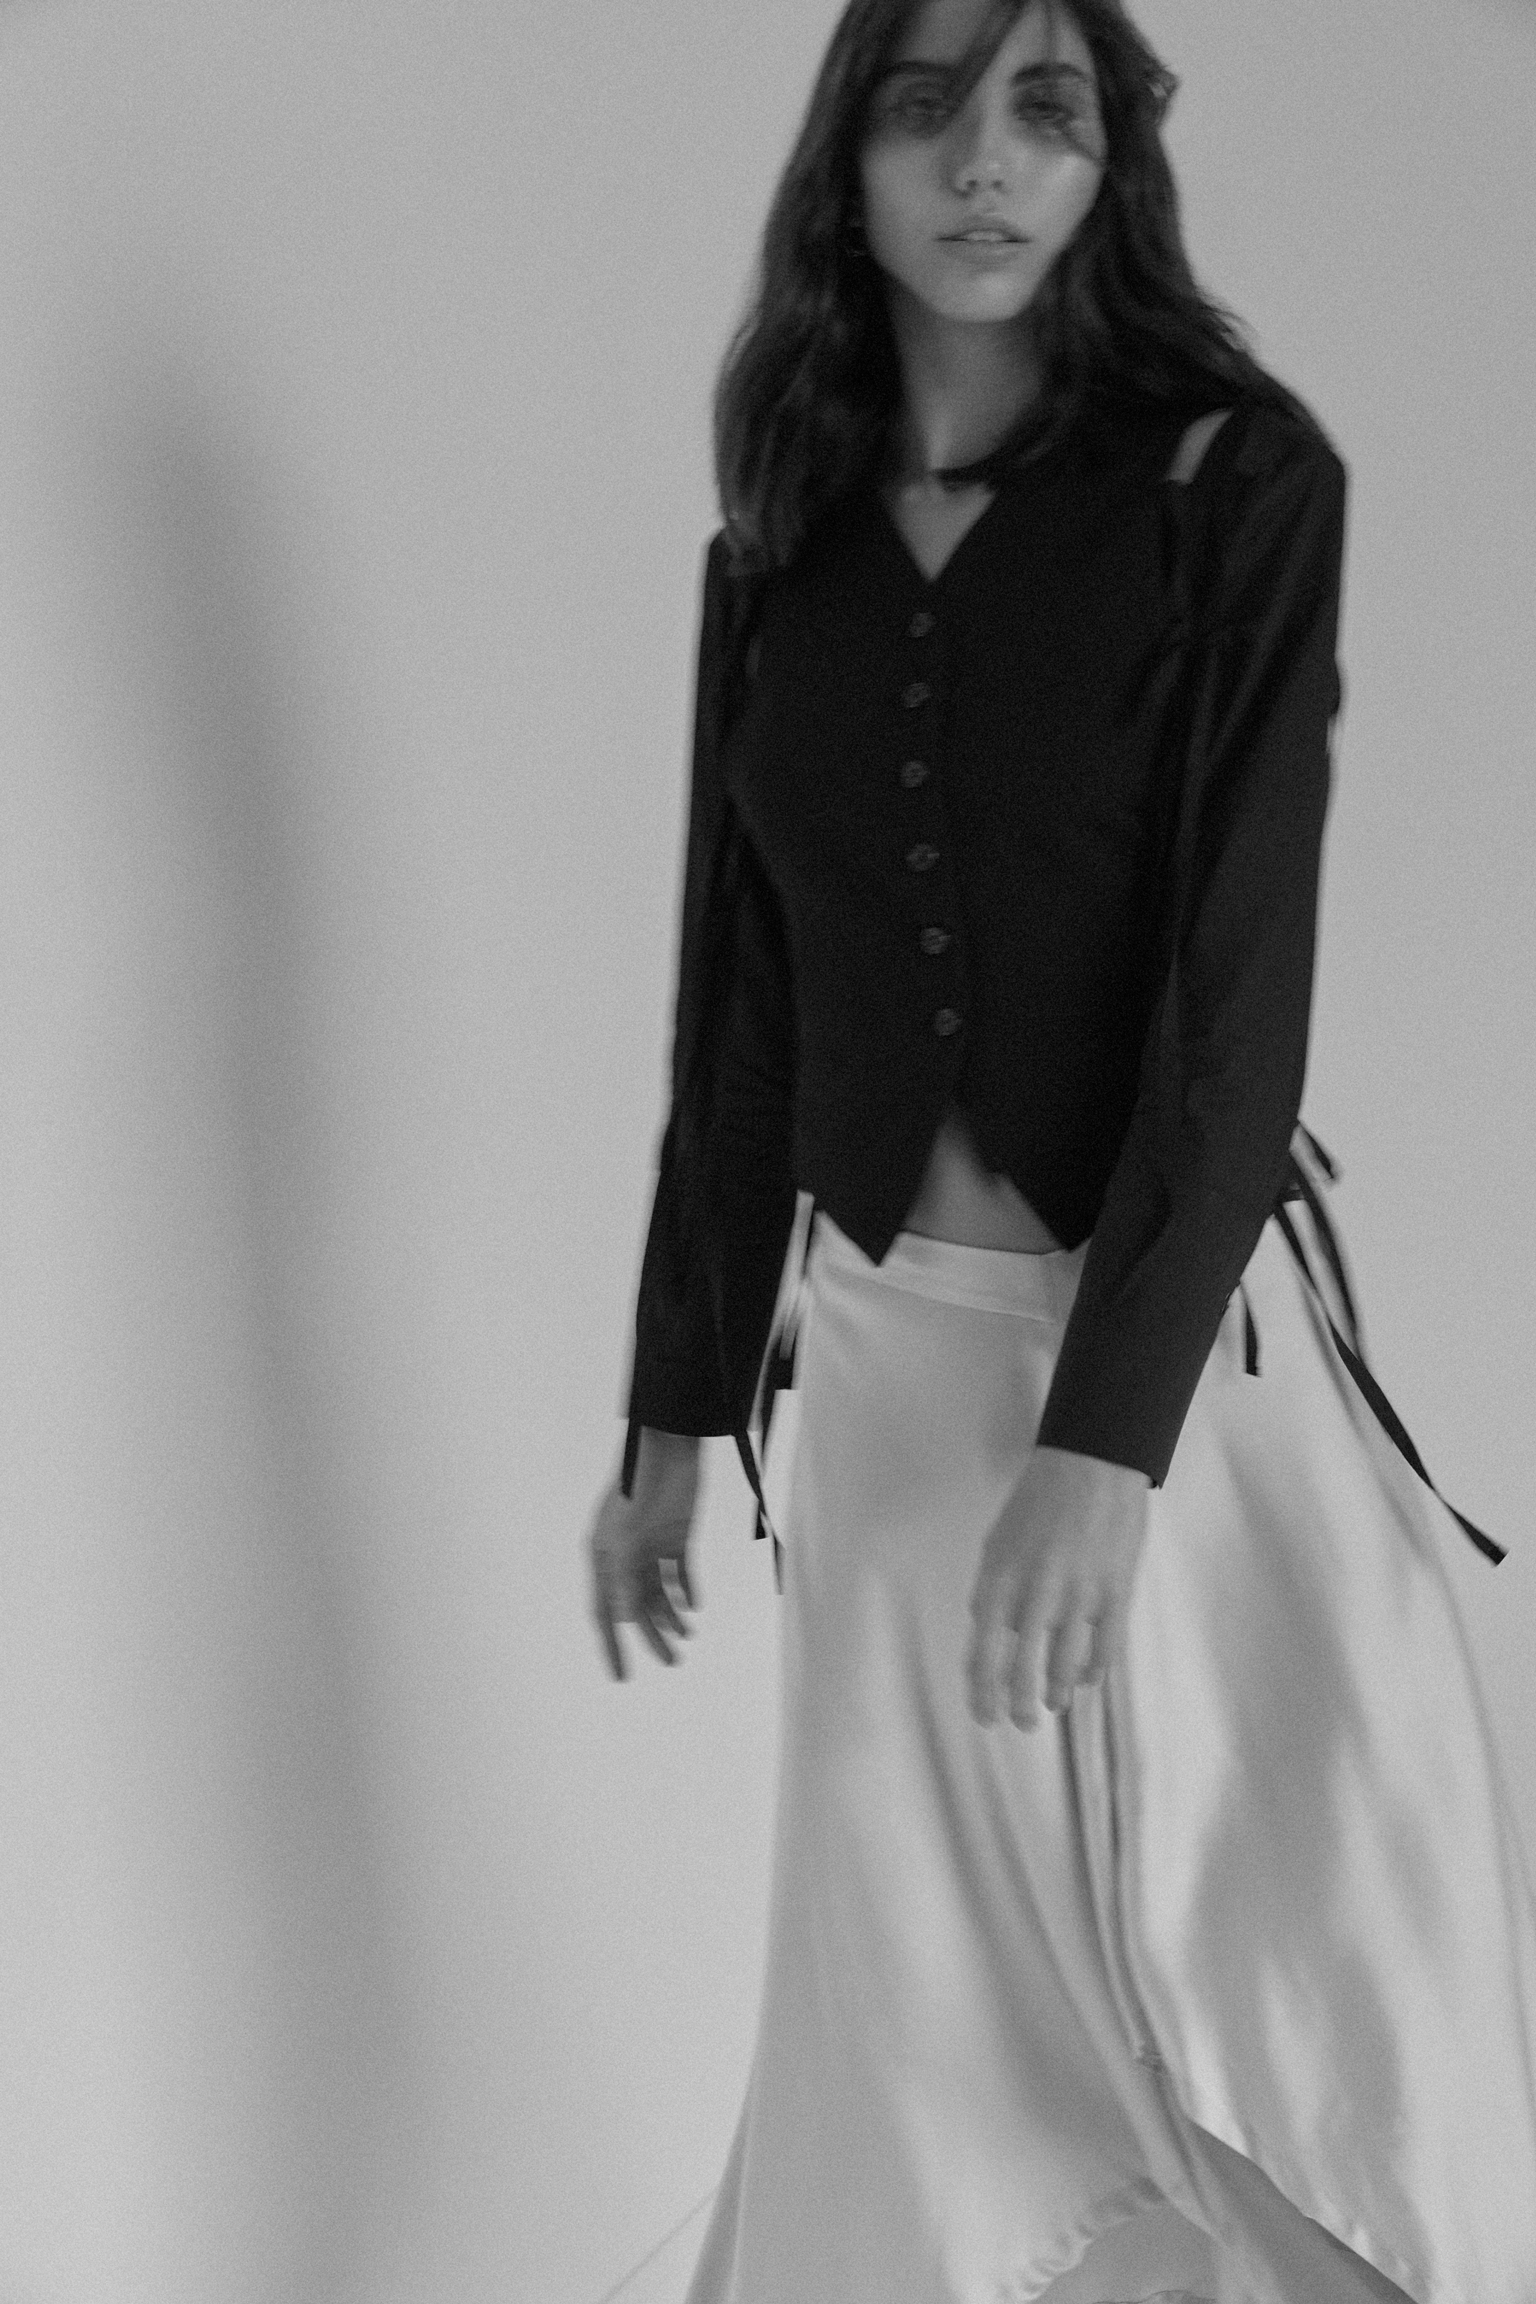 Top |  Ann Demeulemeester at Island Luxe , Skirt |  Lost & Found